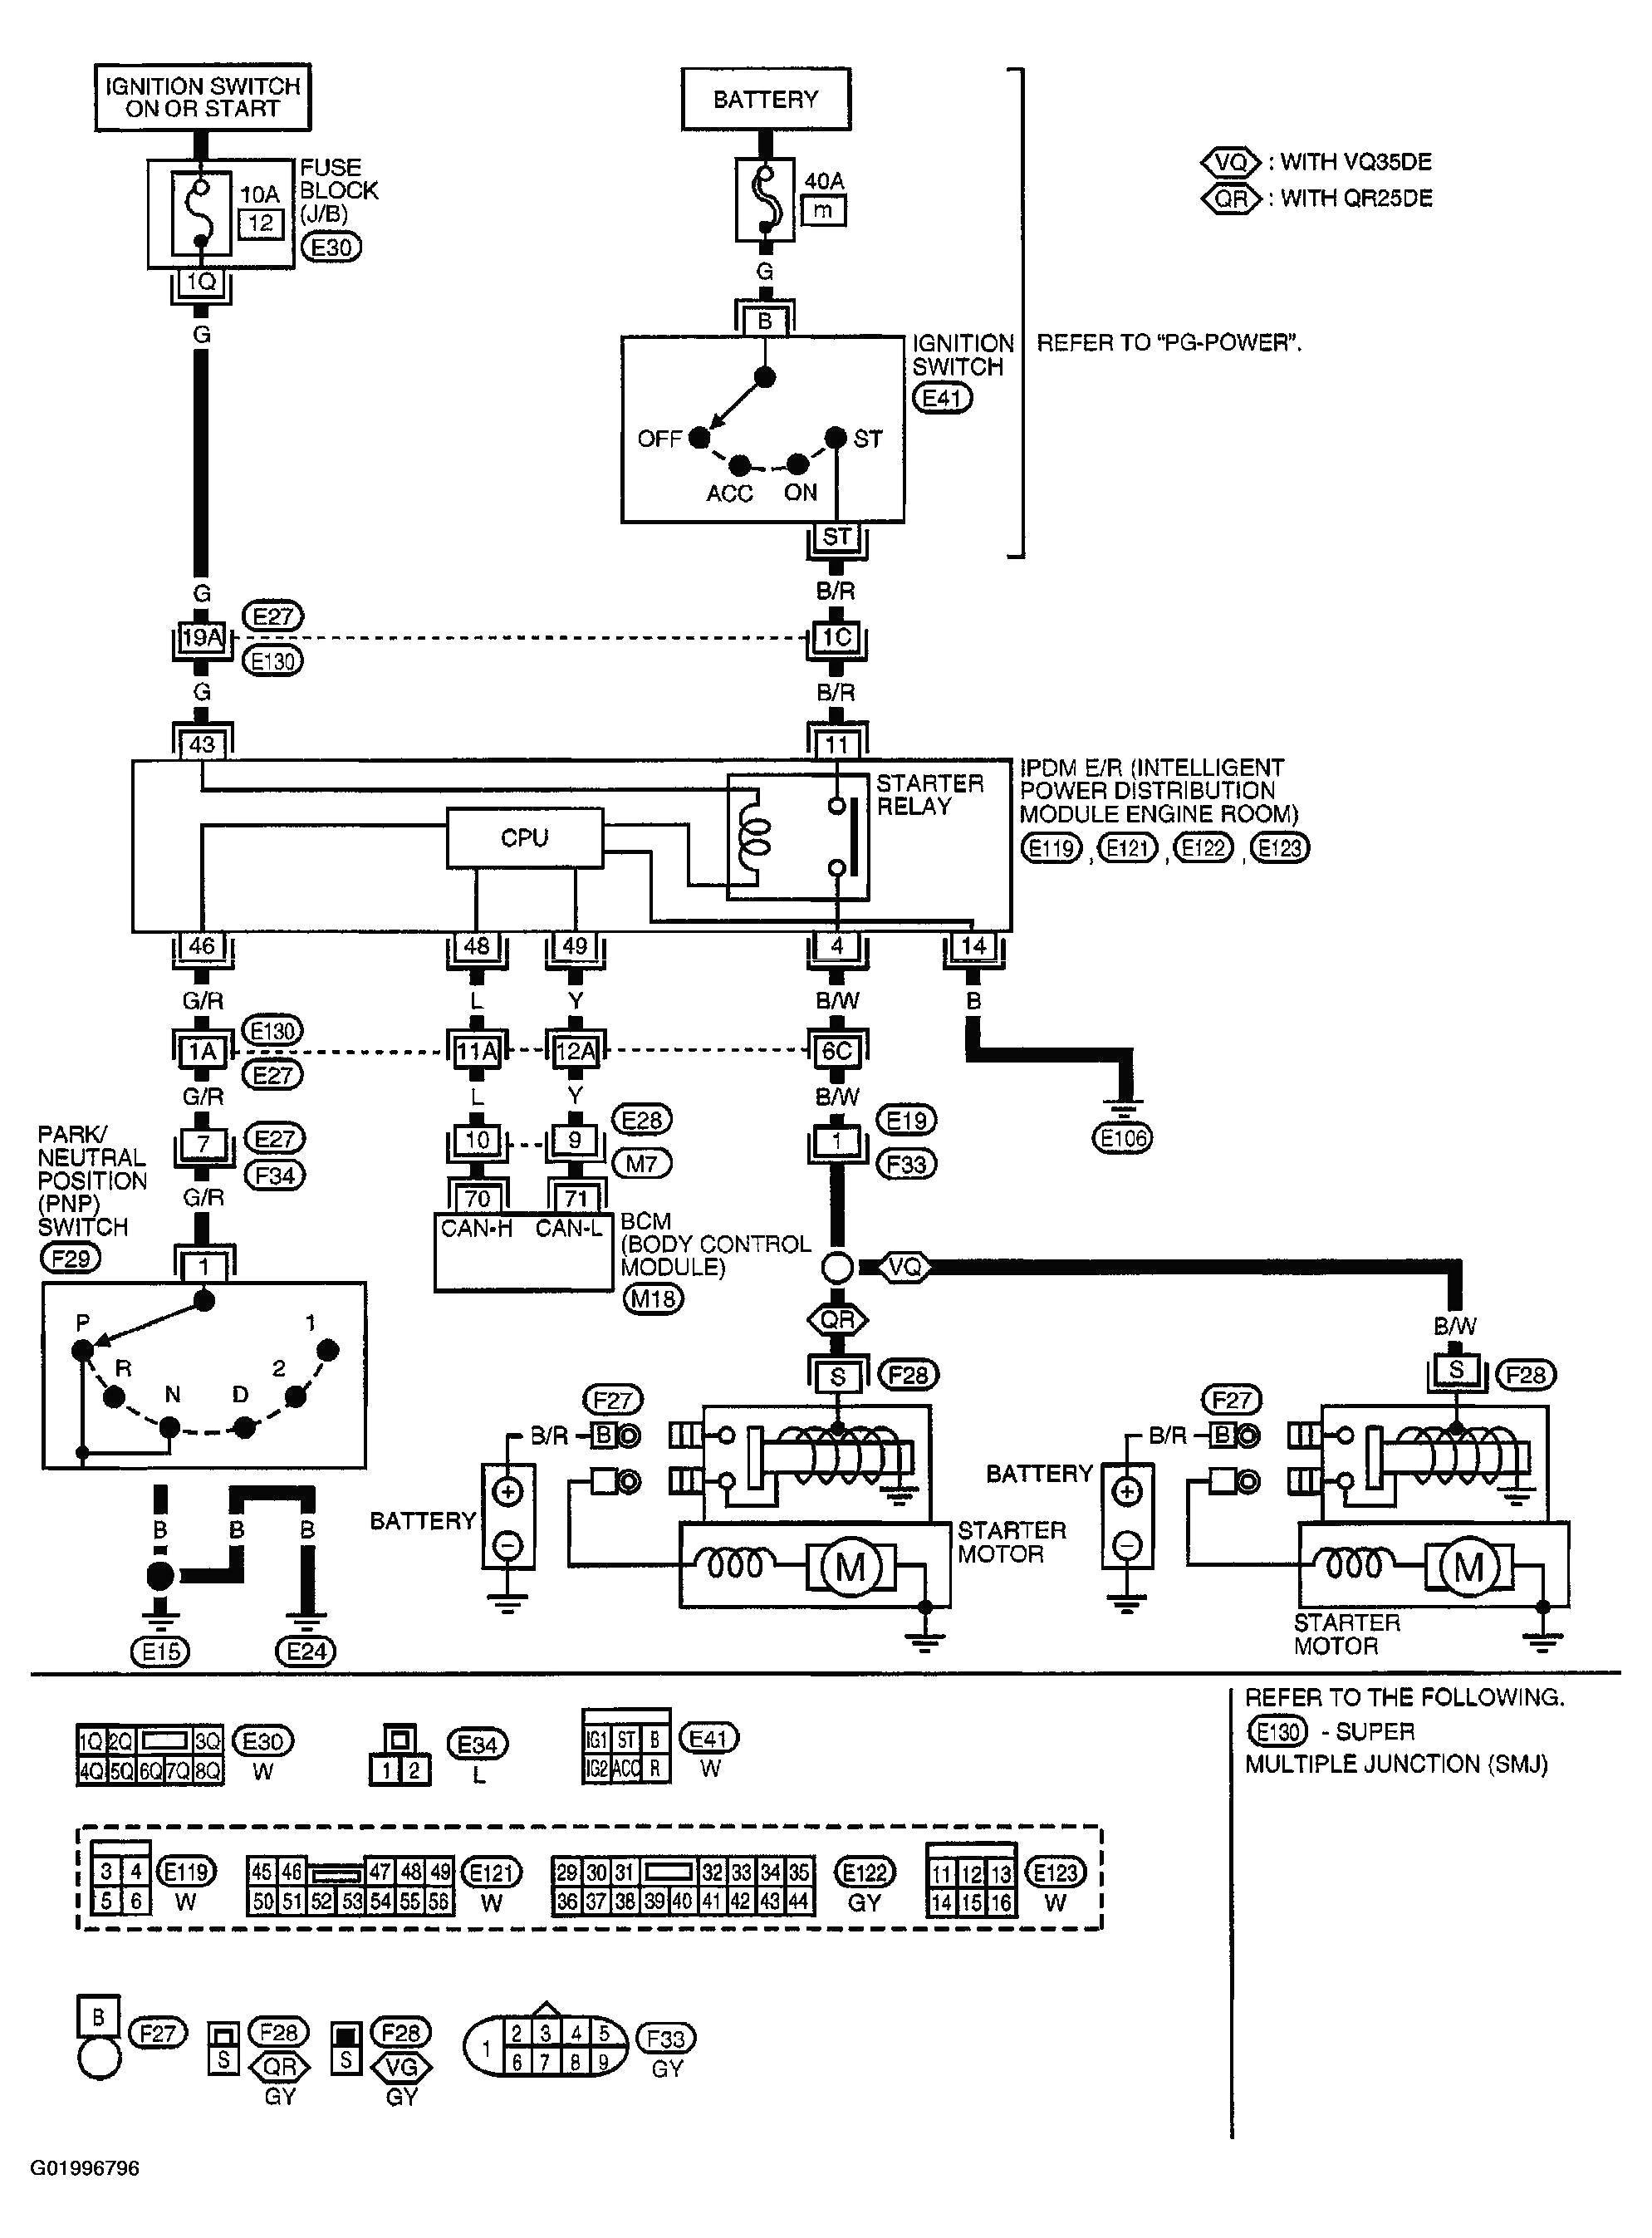 2014 Nissan Altima Wiring Diagram